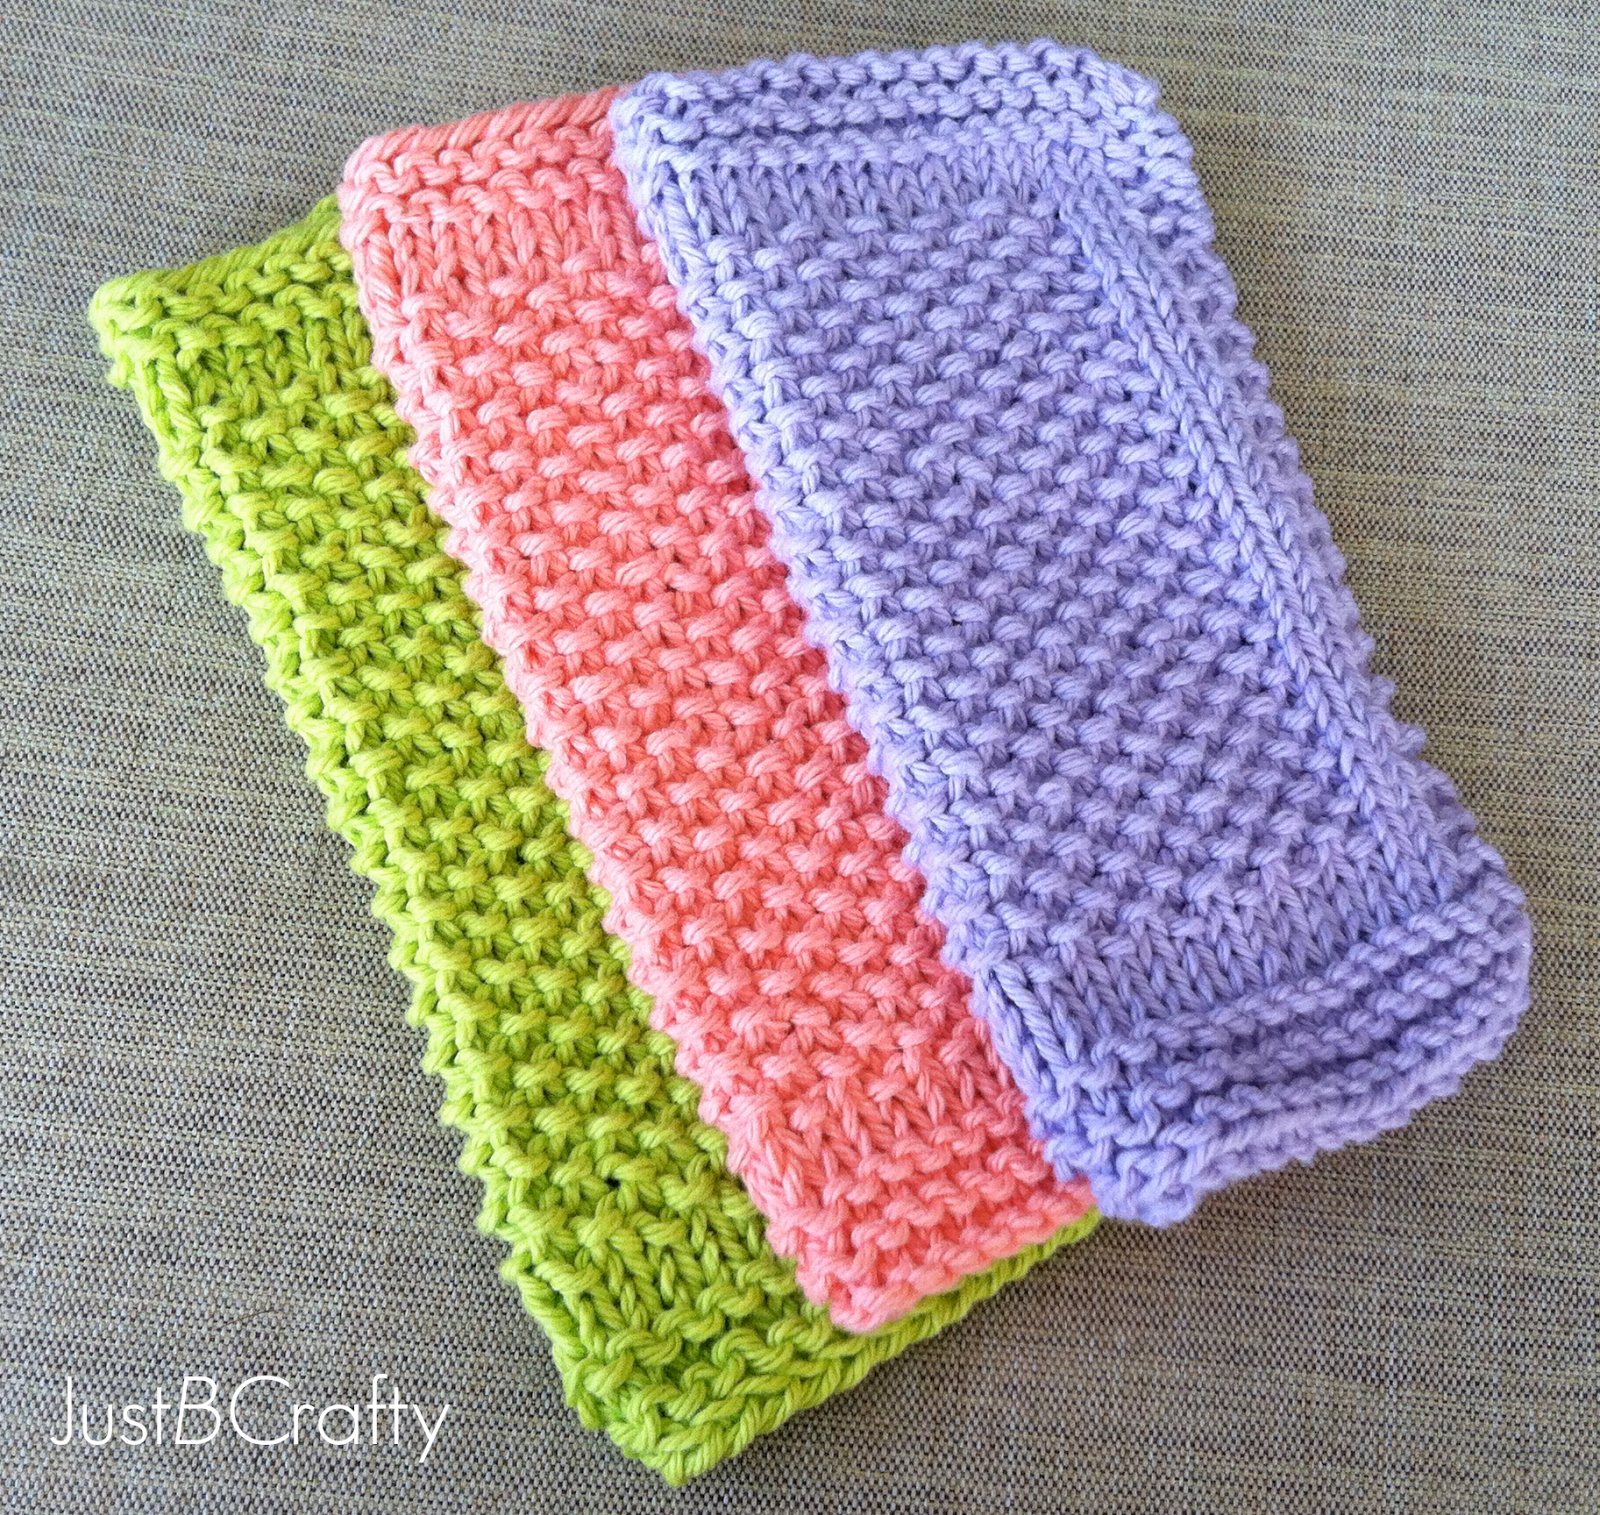 Free Knitting Pattern Turkey Dishcloth : Seed Stitch Dishcloths - Just Be Crafty